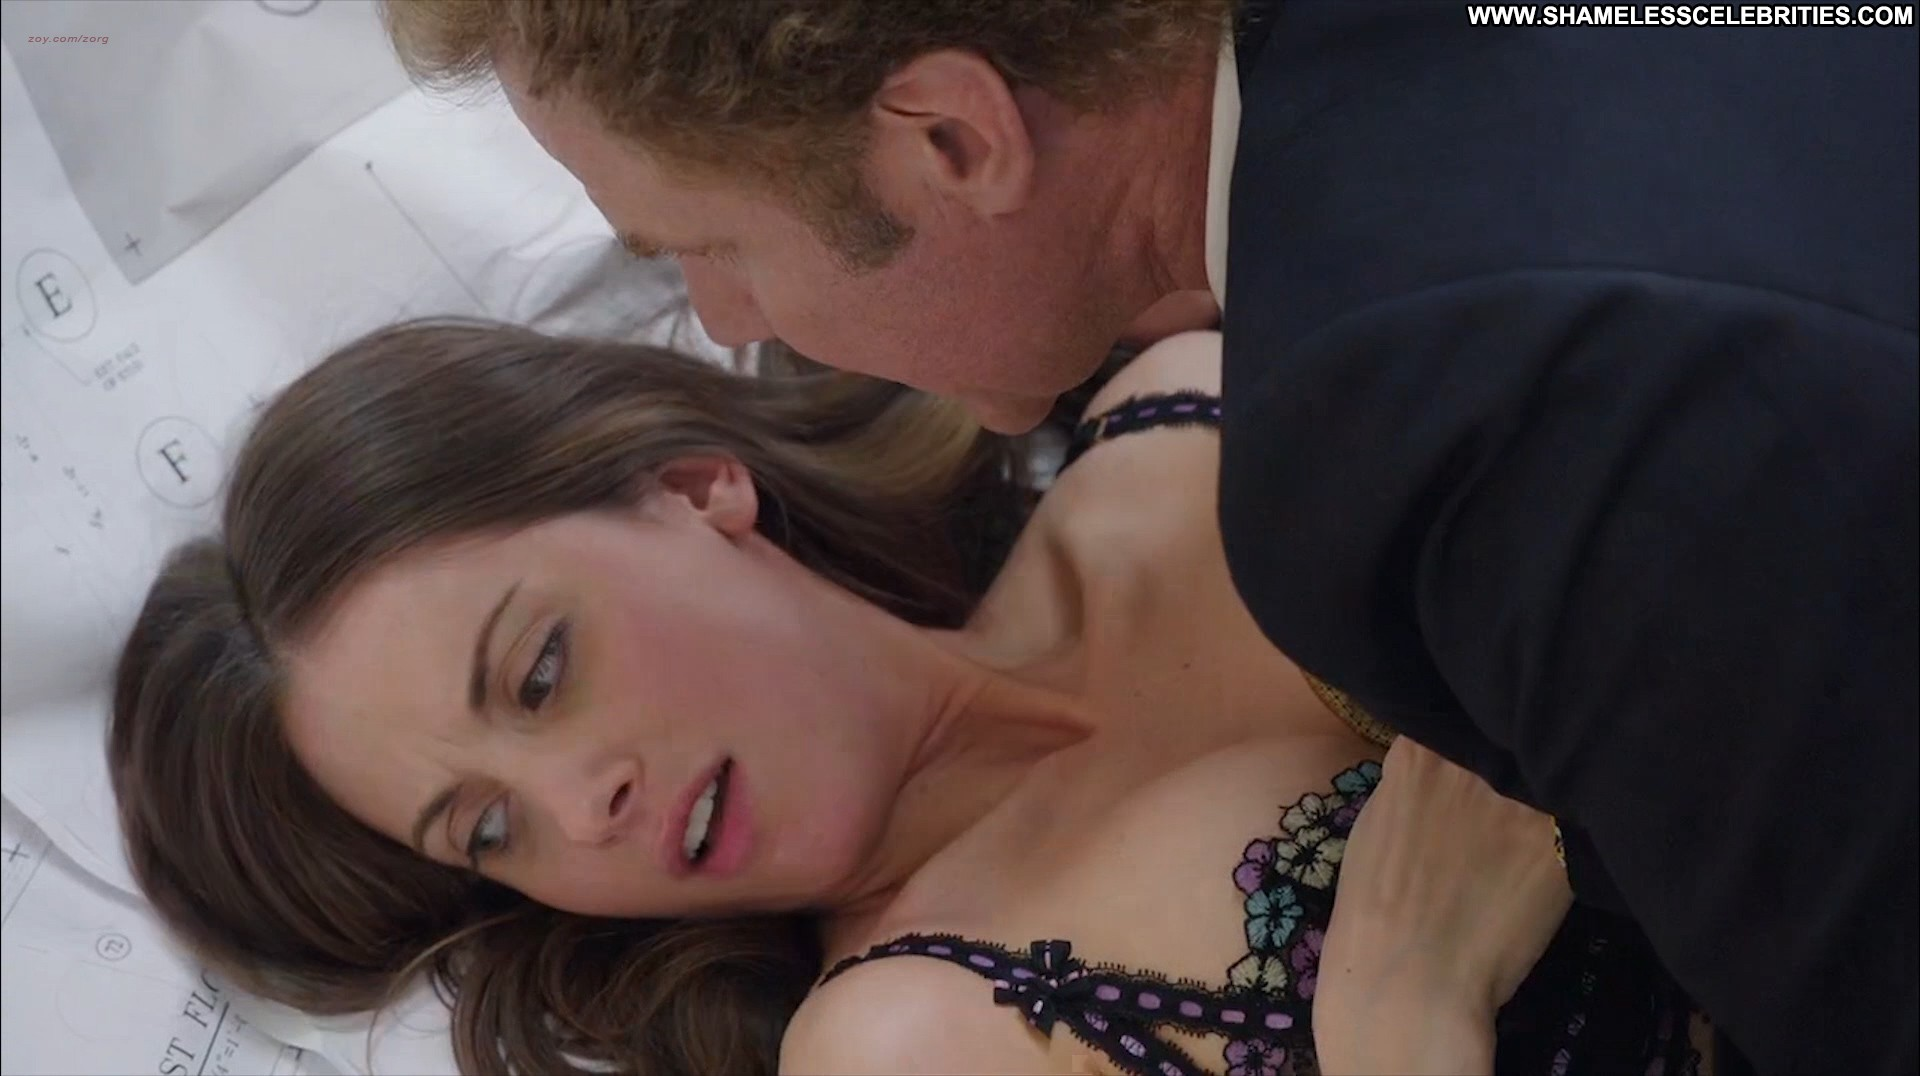 Alison Brie Get Hard Sexy Hot Lingerie Celebrity Posing Hot Hd